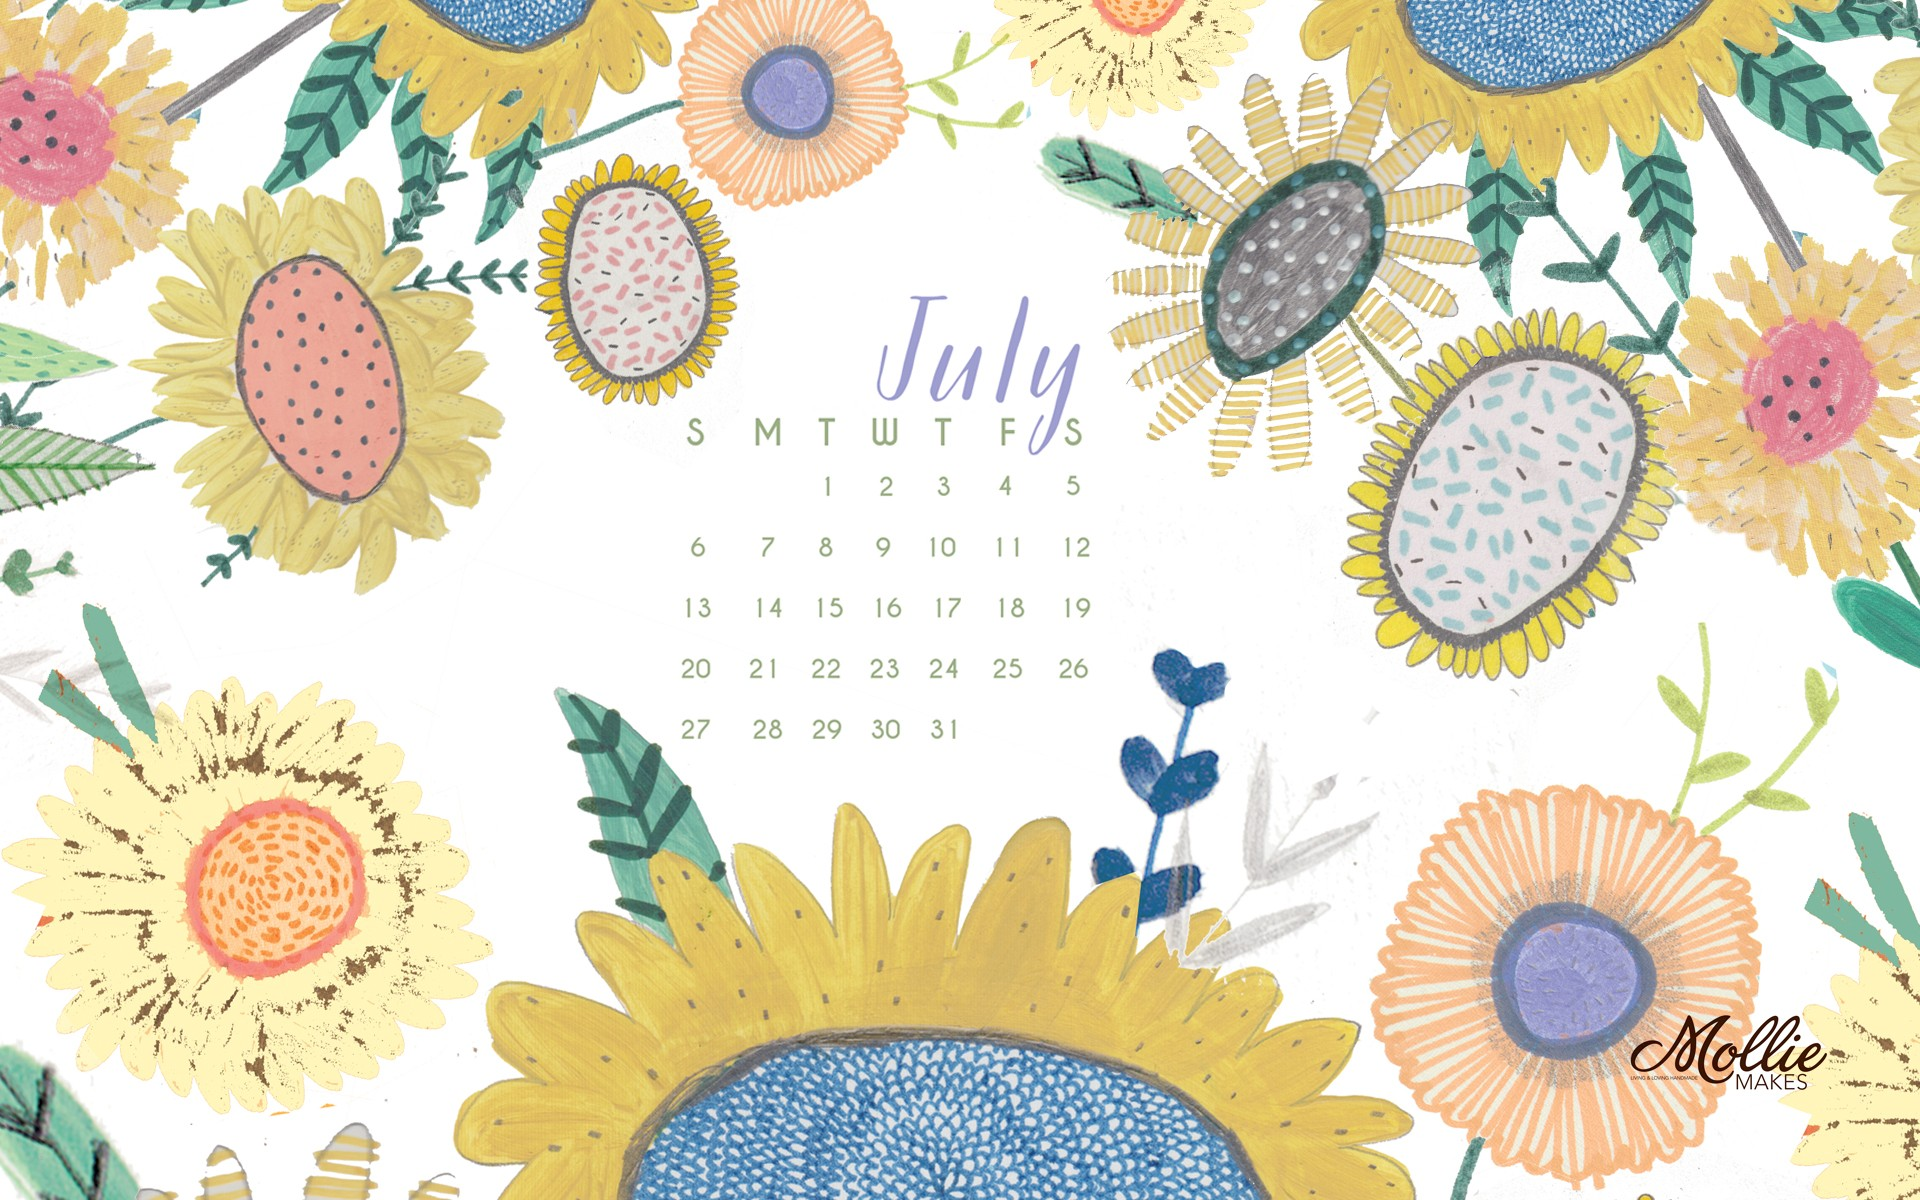 March Calendar Desktop Wallpaper Recientes Google Calendar Desktop Clipart Collection Of March Calendar Desktop Wallpaper Más Actual March 2019 Desktop Background Calendar